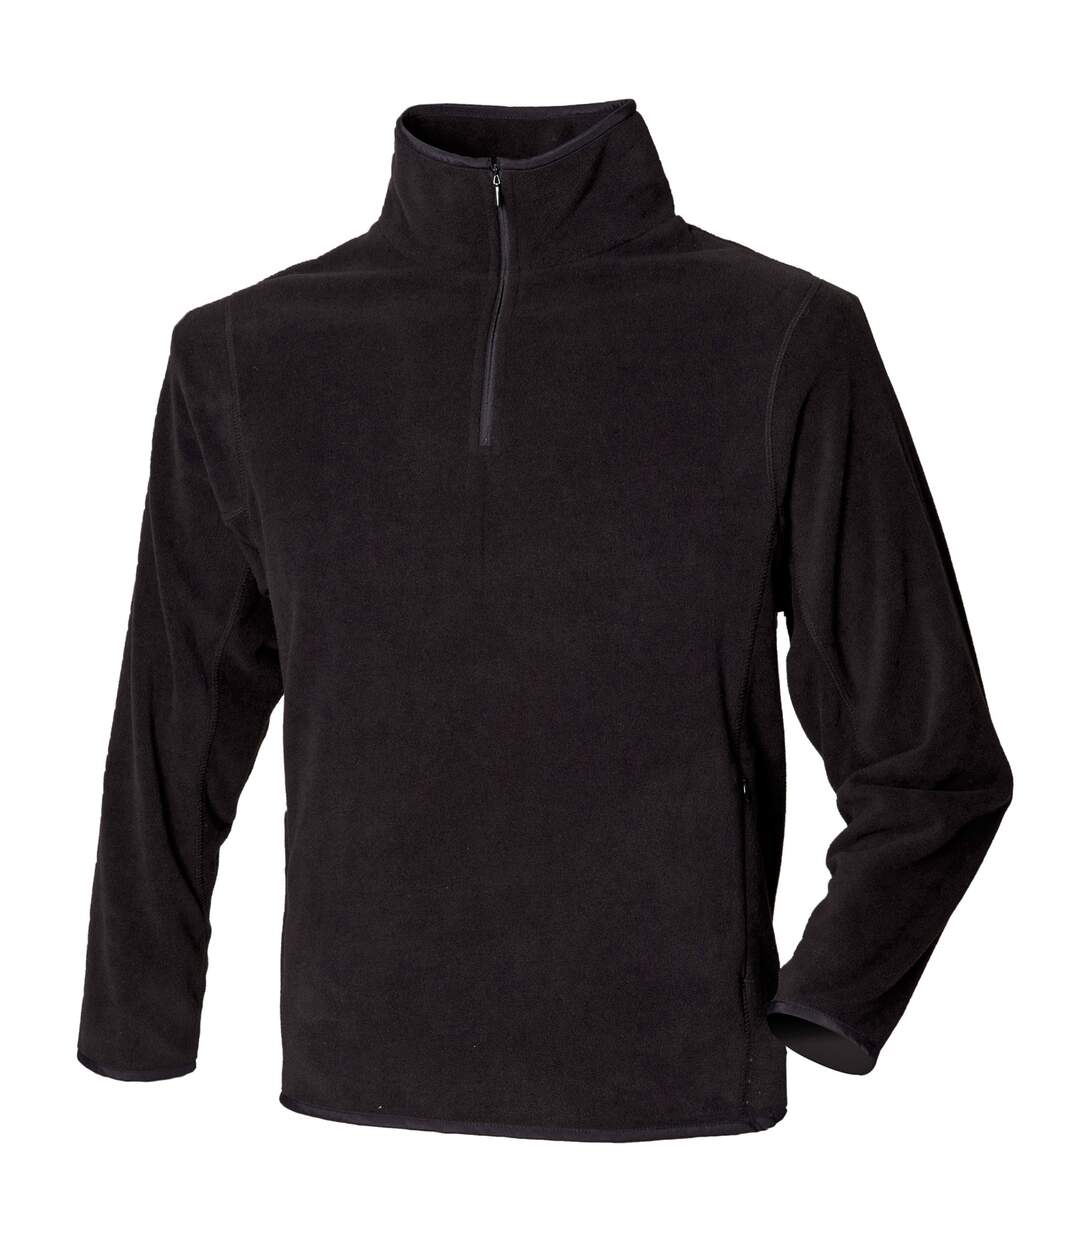 Henbury Mens 1/4 Zip Lightweight Inner Fleece Top (Black) - UTRW680